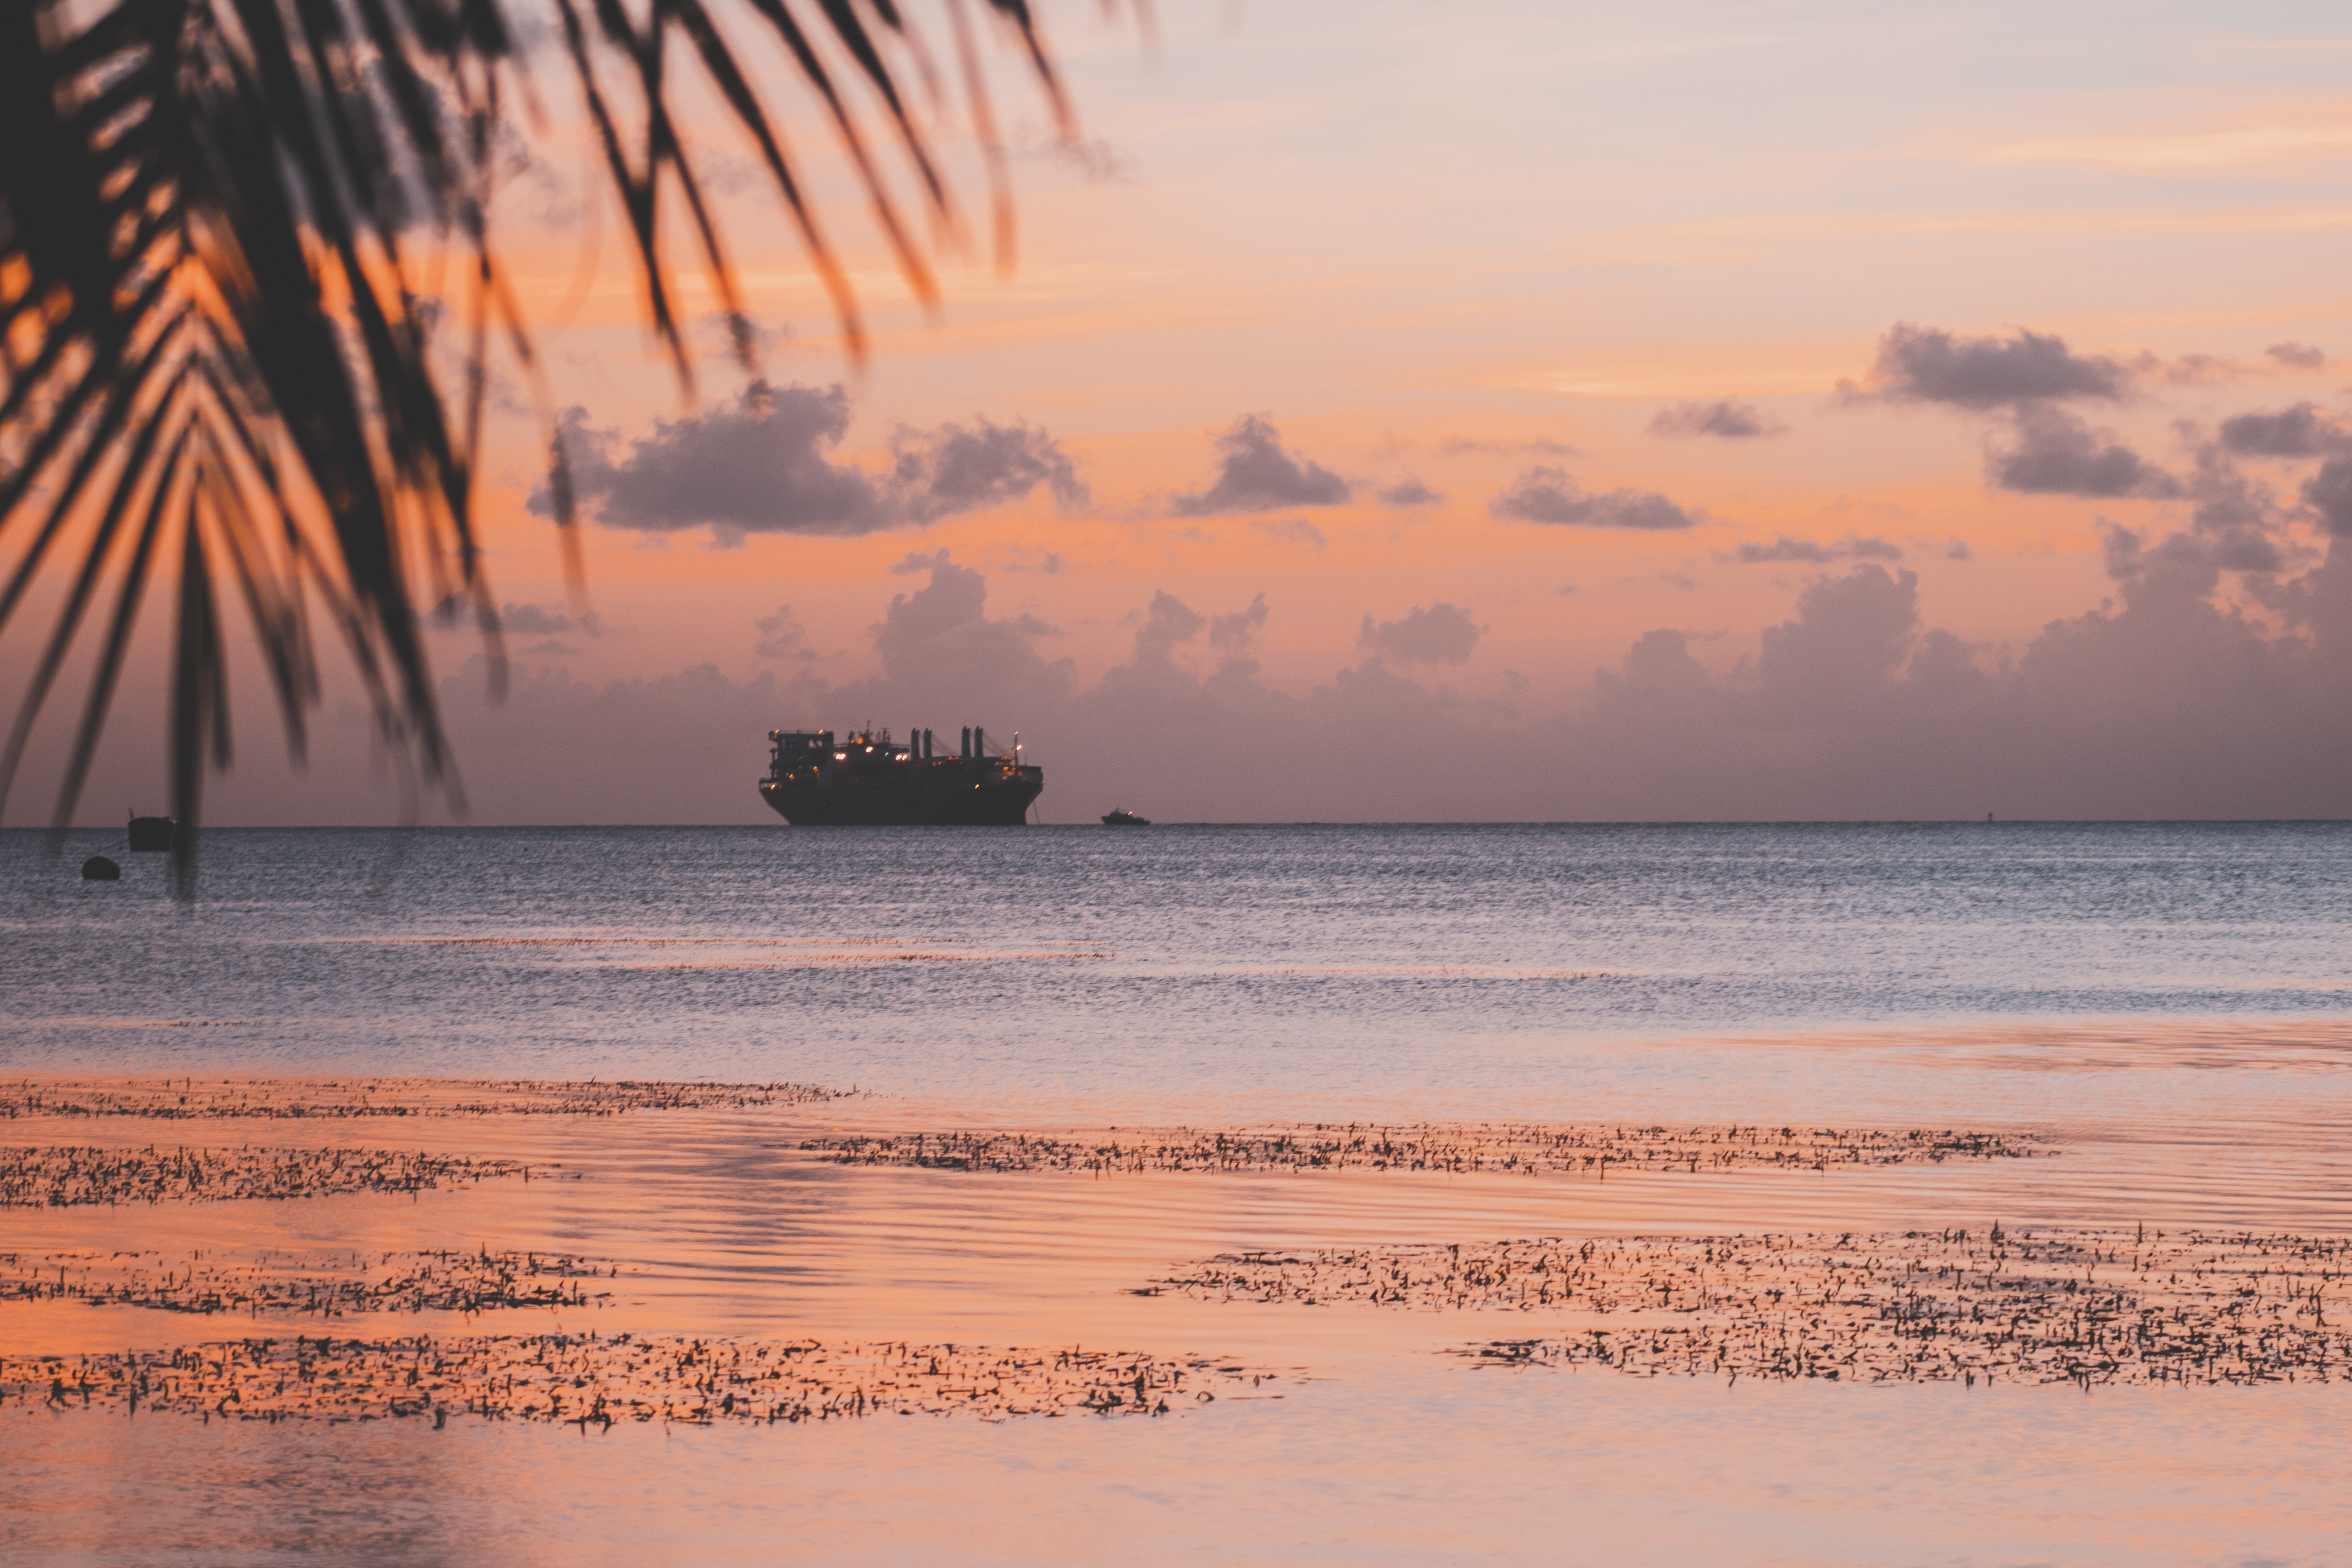 Large ship silhouette on the horizon from a tropical beach in Saipan at sunset